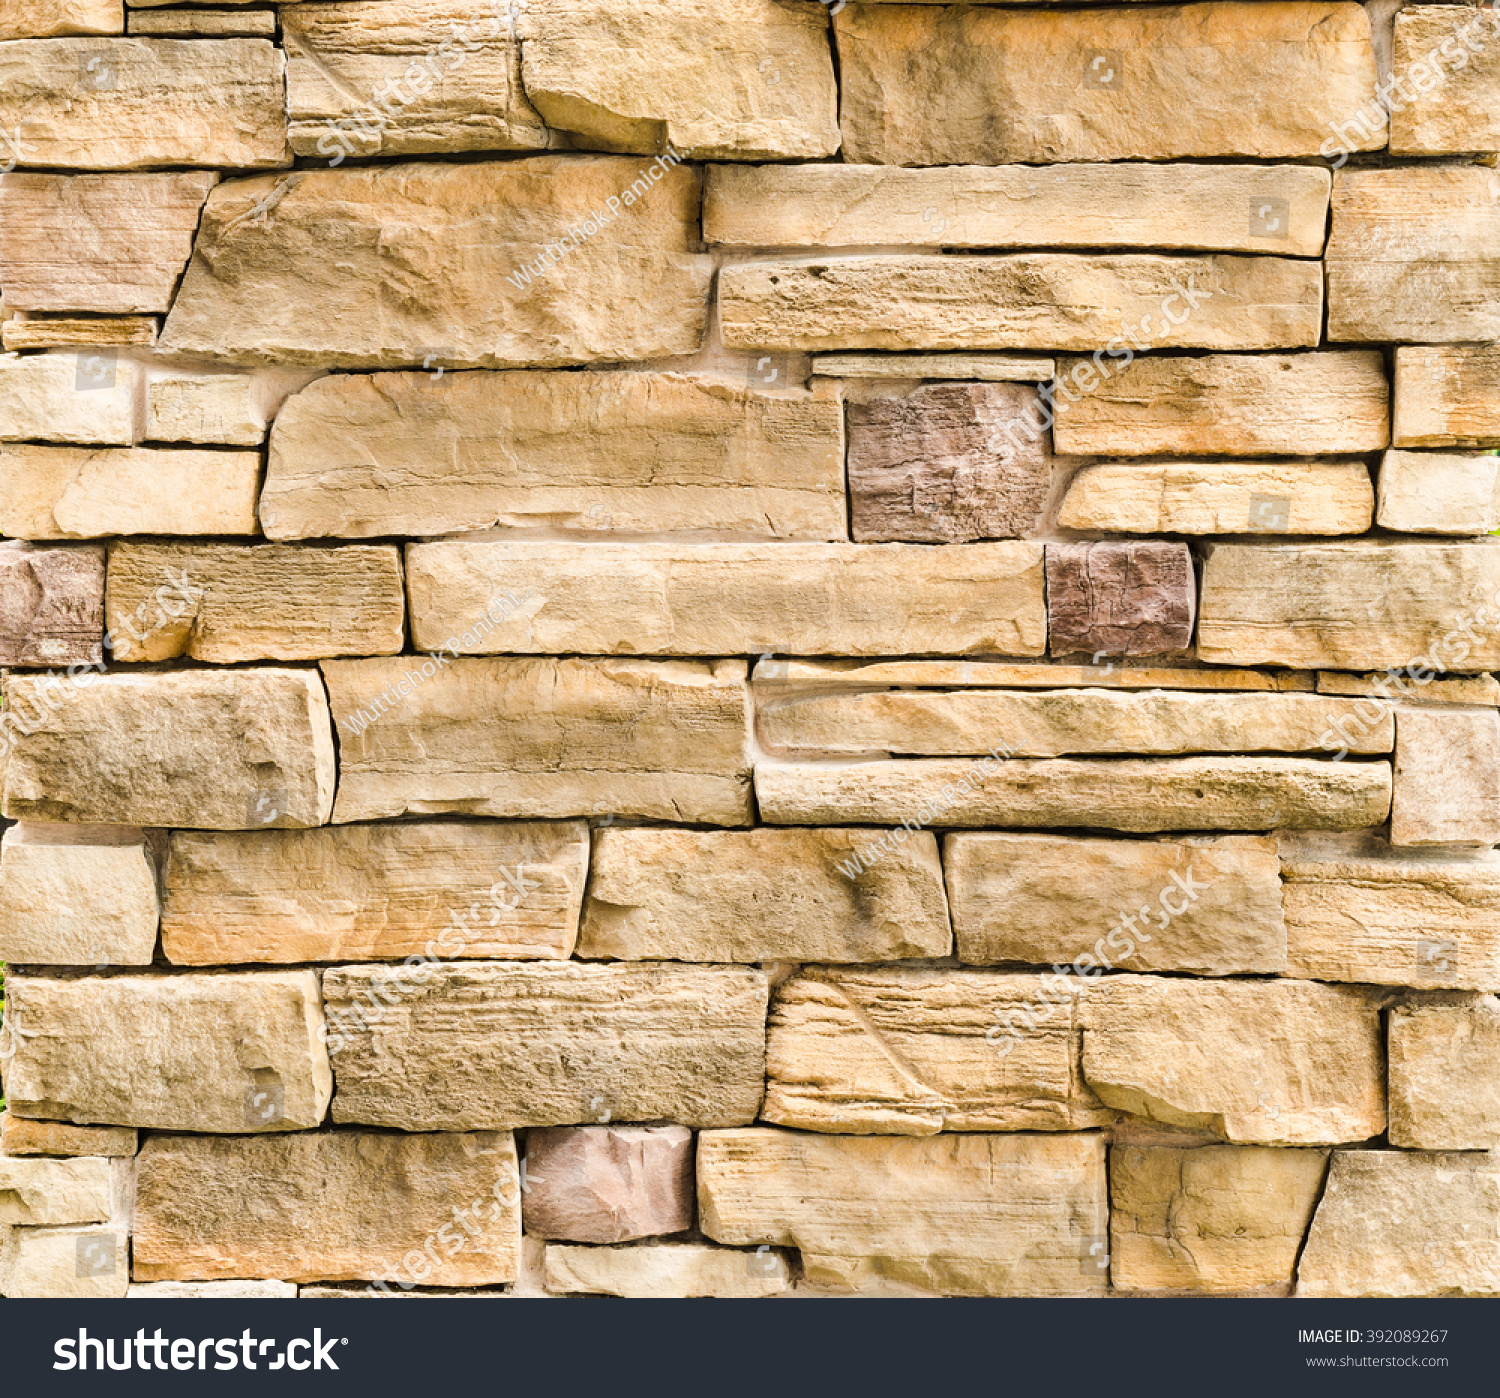 Excellent Decorative Stone Wall Tiles Pictures Inspiration - The ...